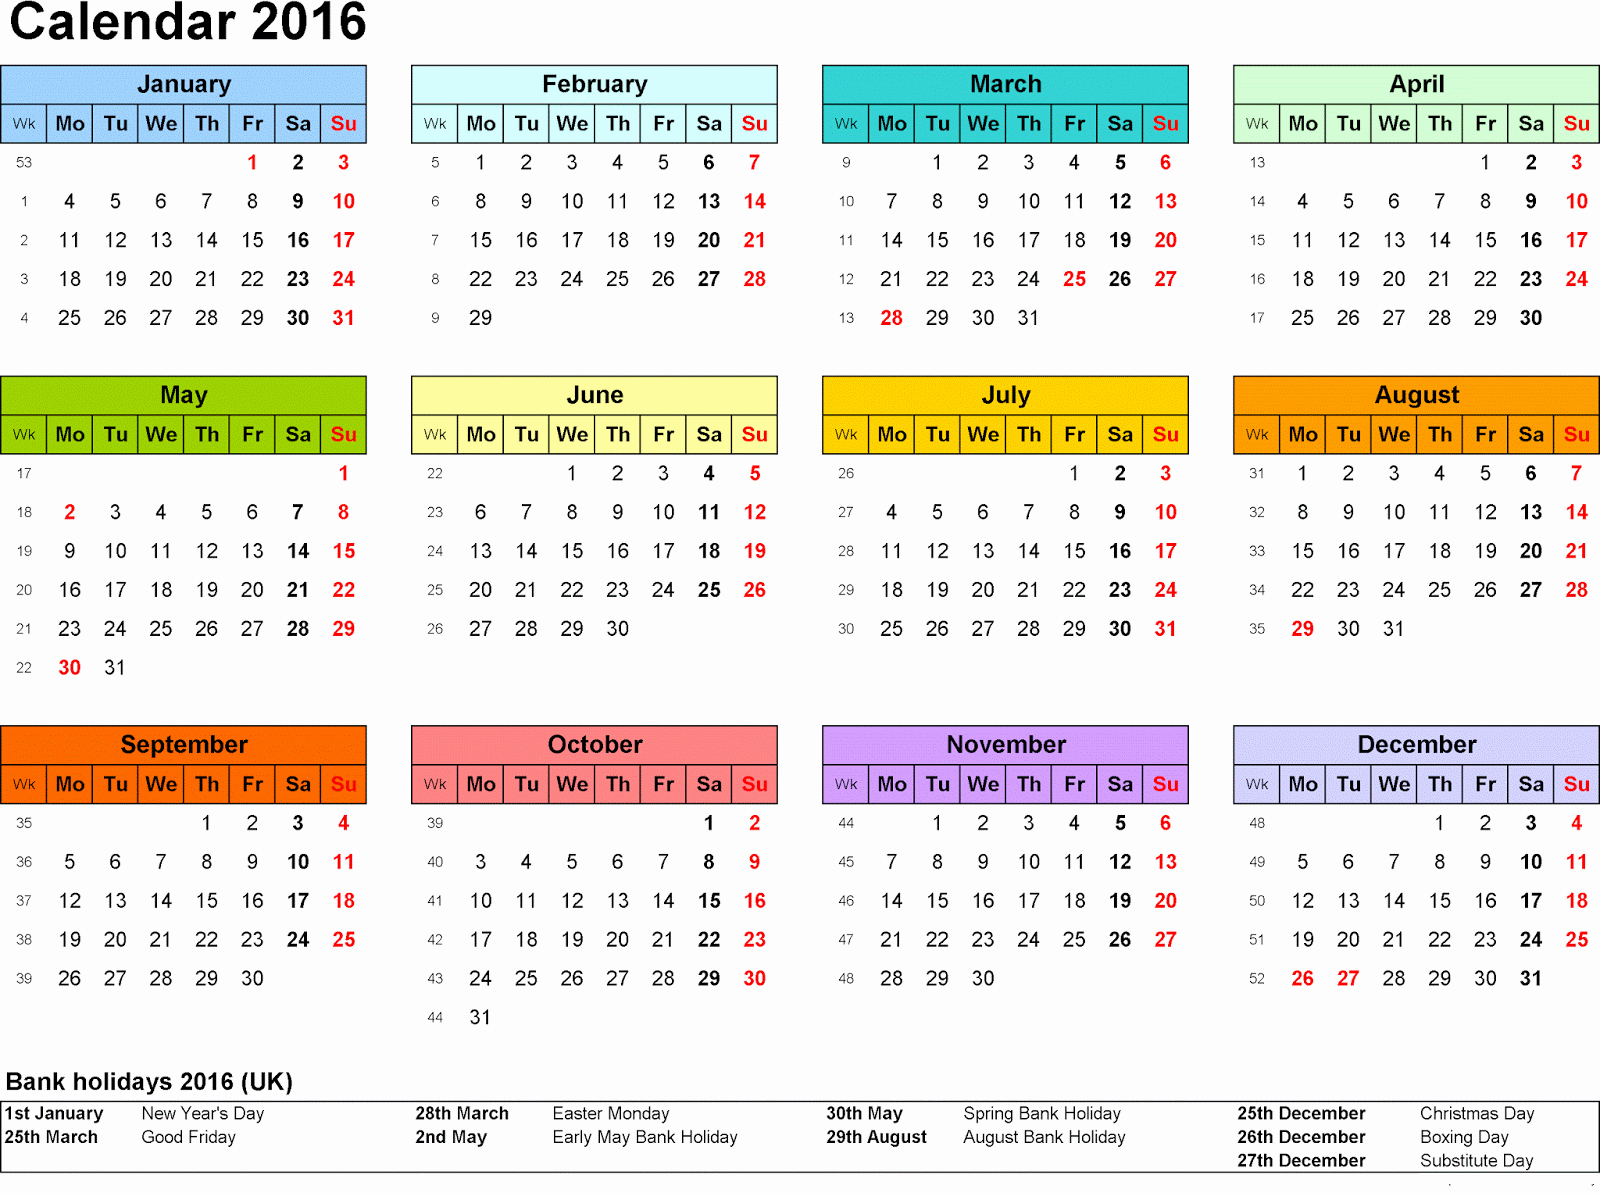 Free Downloadable 2016 Calendar Template Fresh [free] Printable Calendar Templates 2016